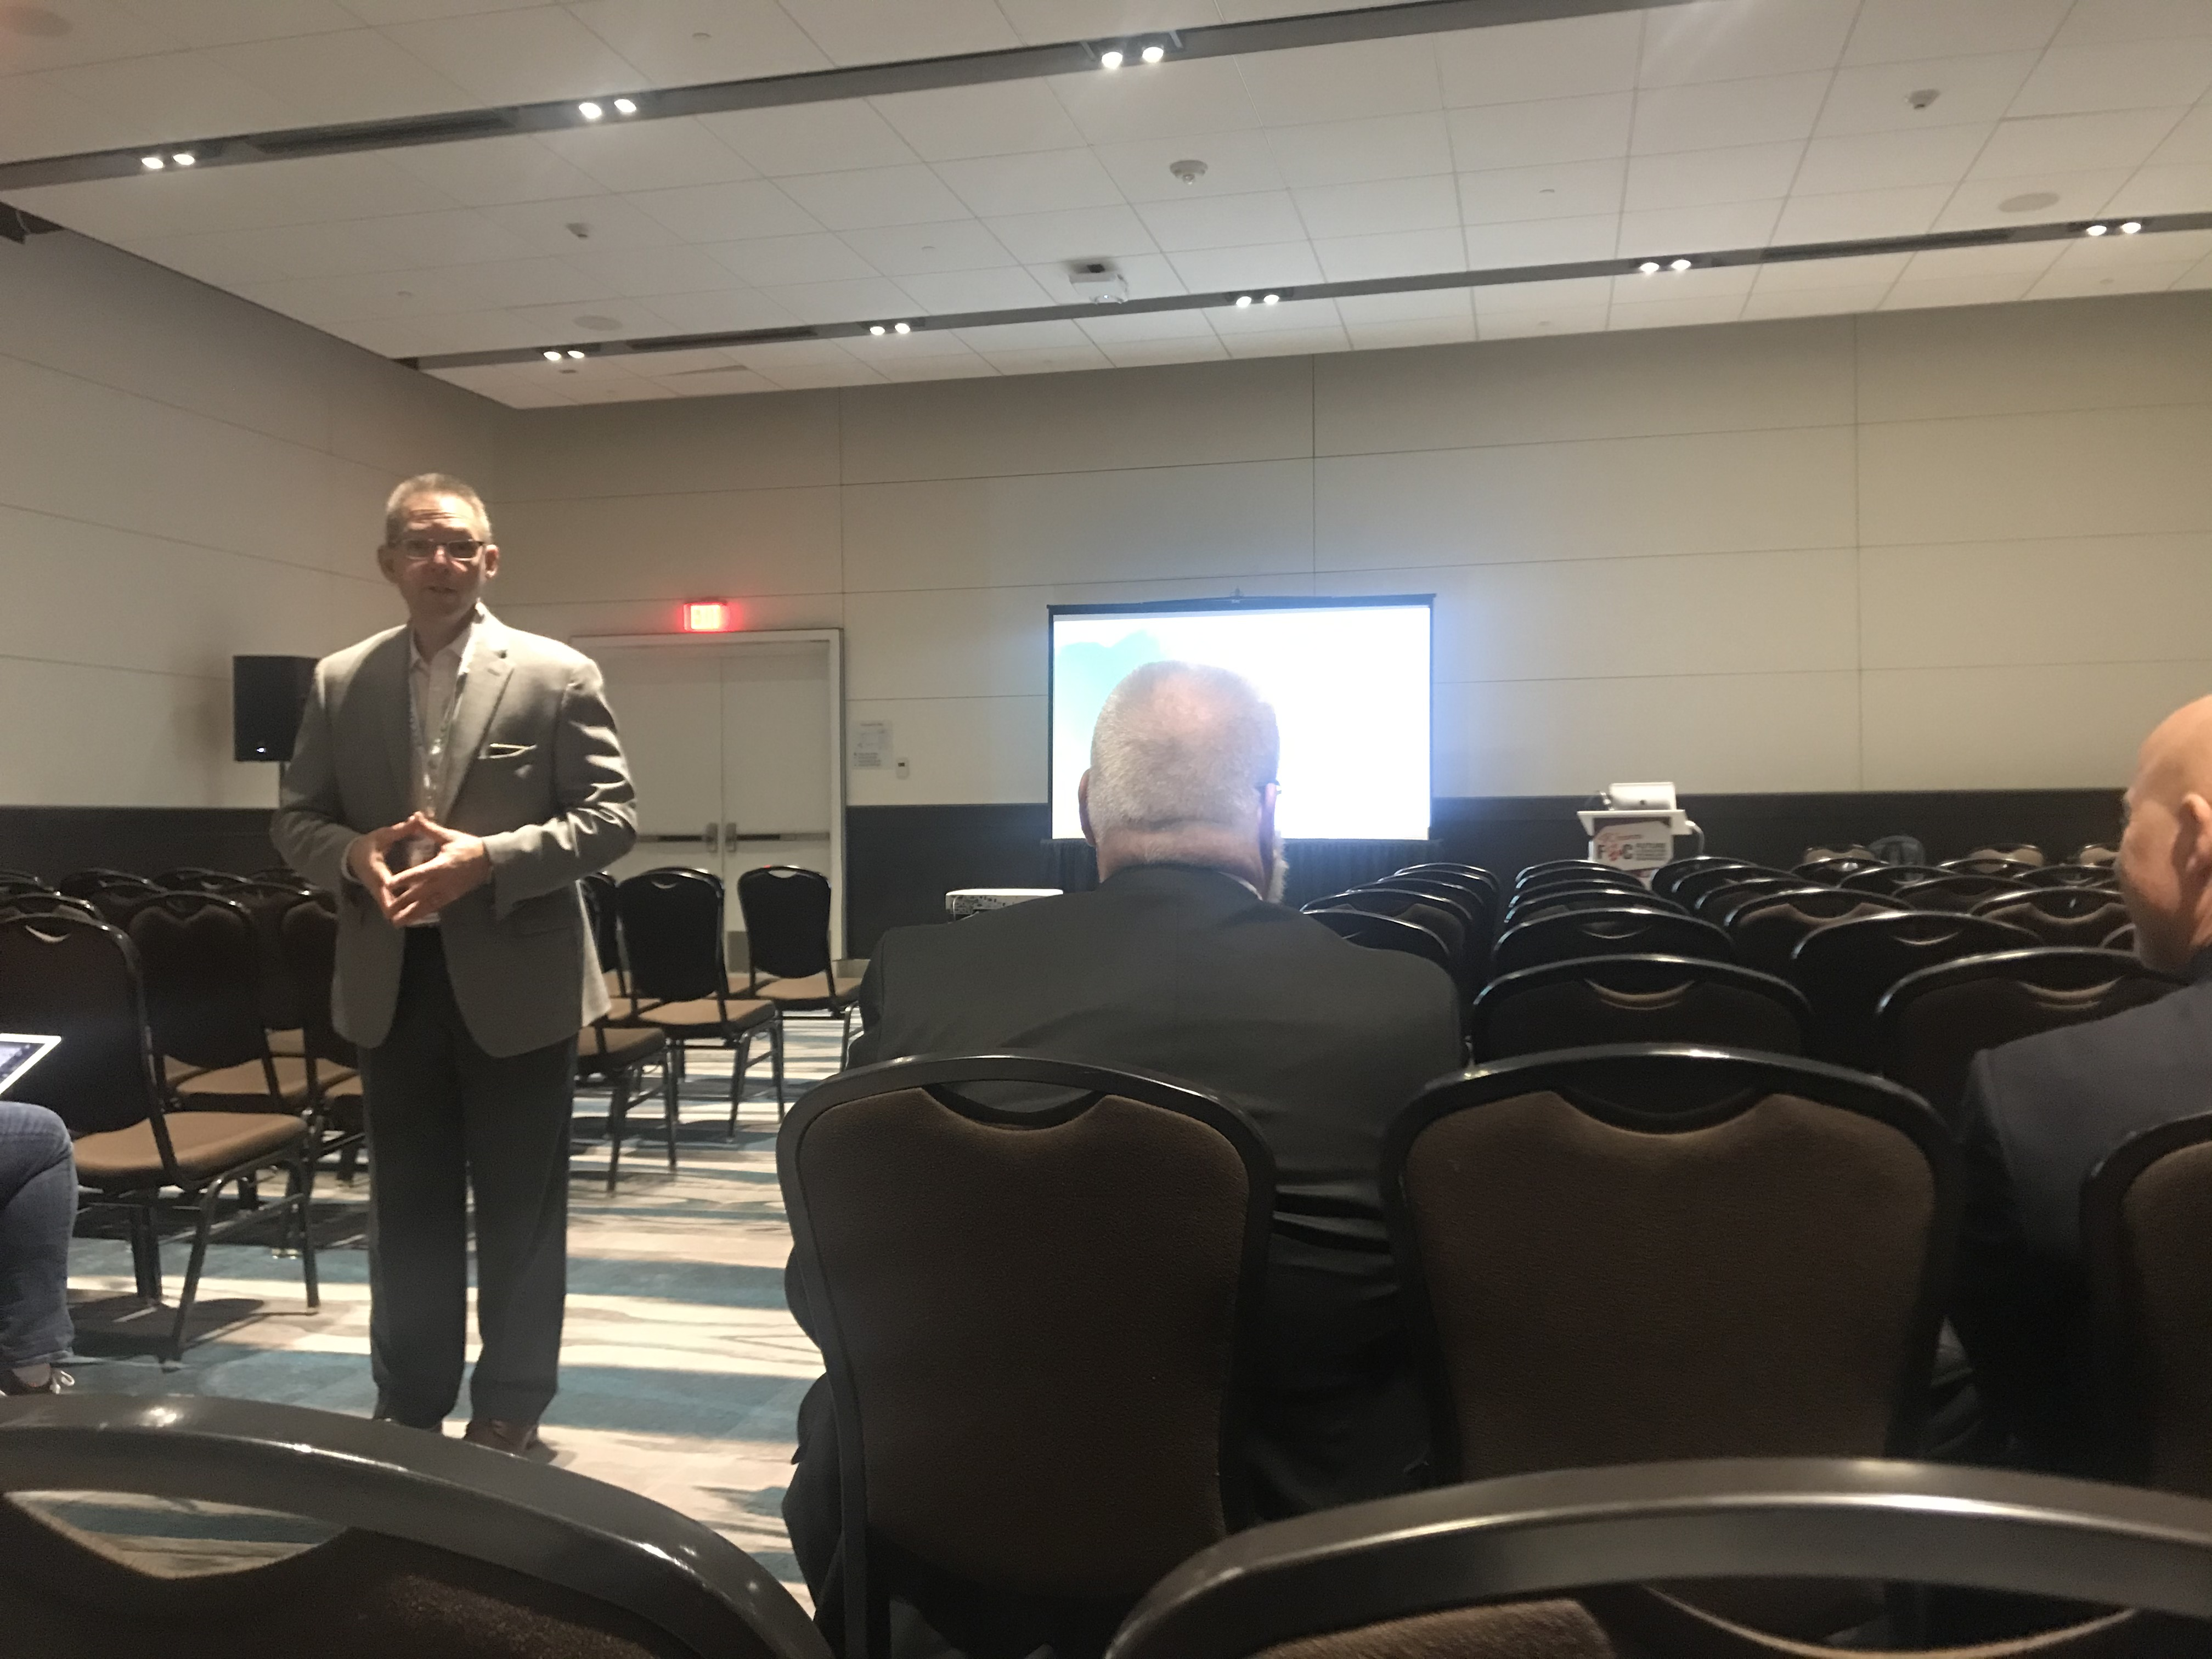 Gregory Firn spoke on the intersection of innovation and impact, including special considerations for access and equity.